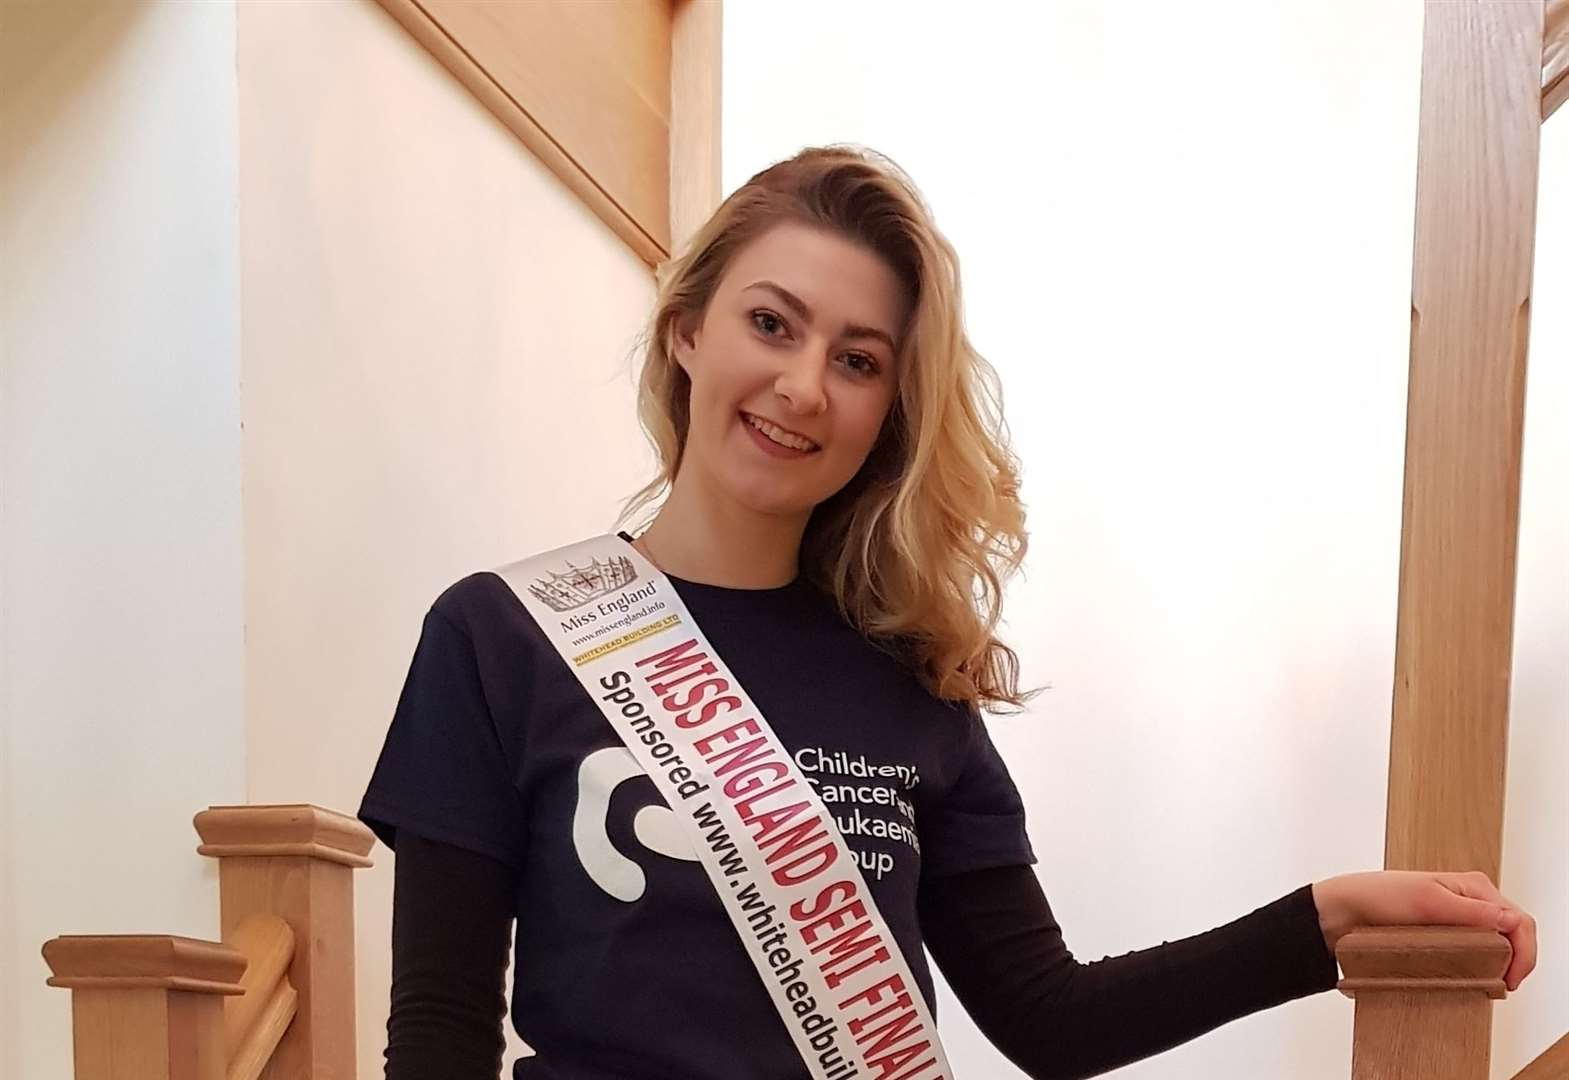 Jodie Whitehead from Manthorpe who is vying to be crowned Miss East Midlands raises £300 for Children's Cancer and Leukaemia Group